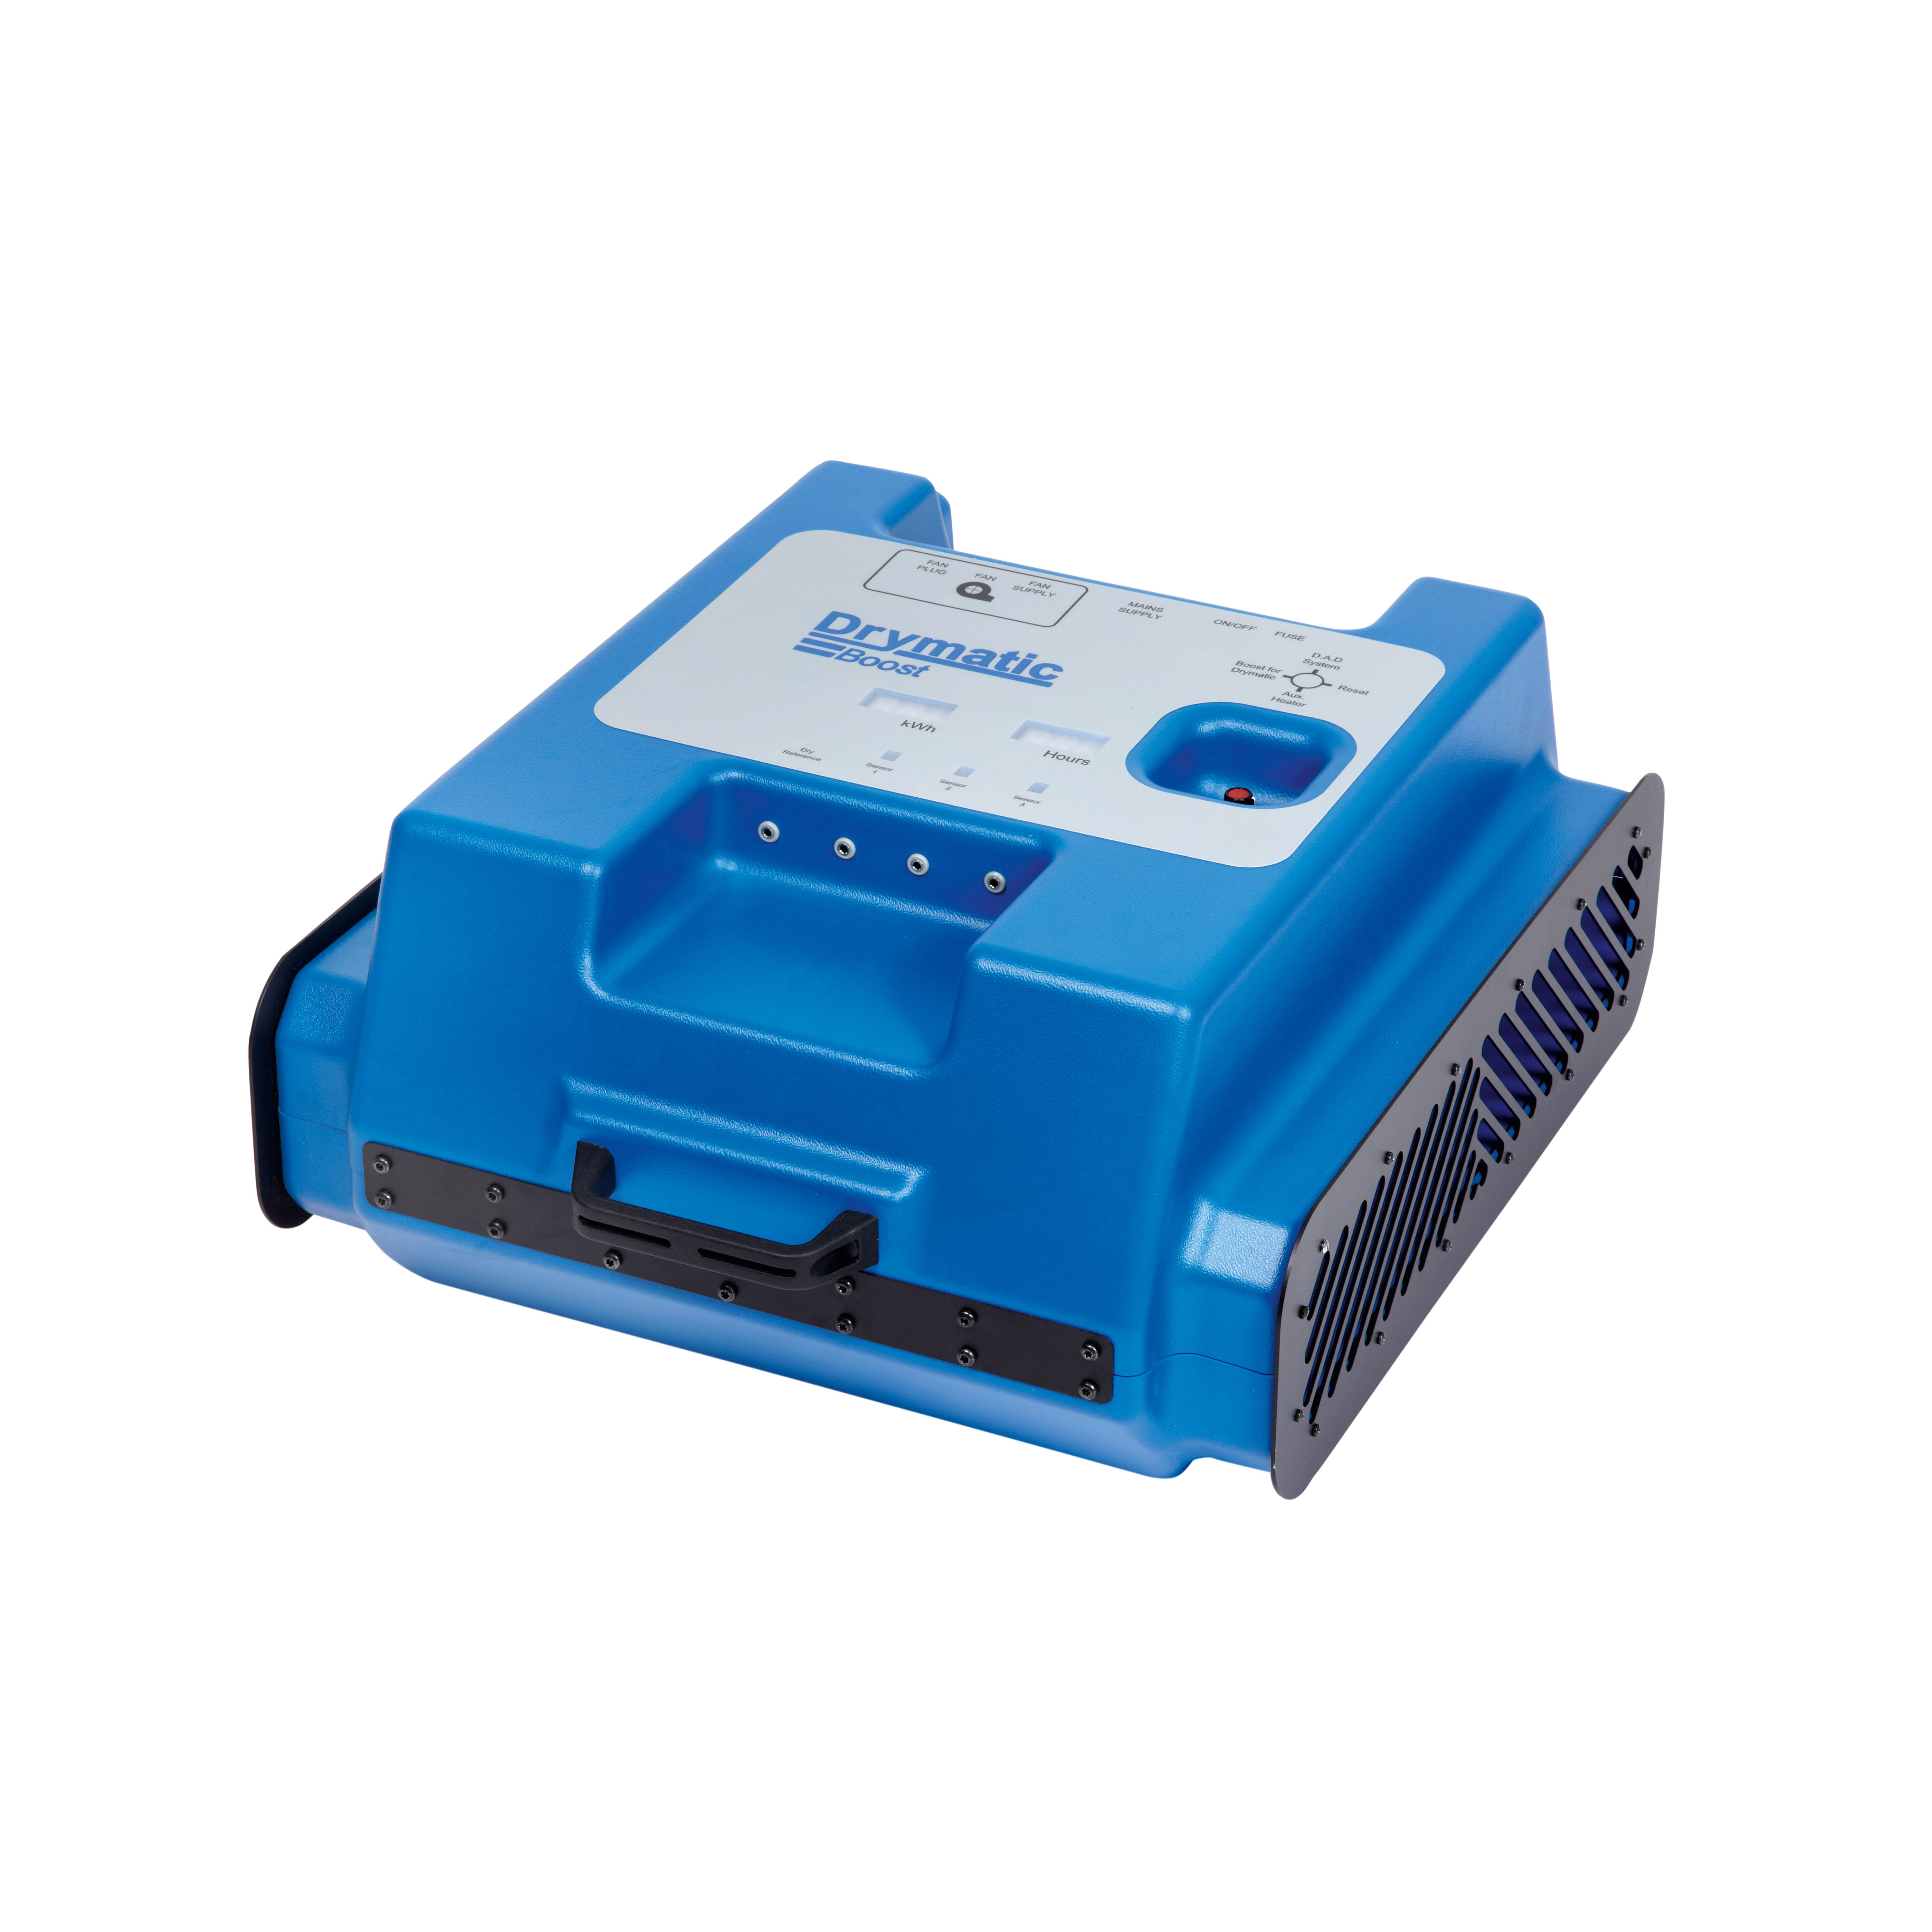 BDK Drymatic Boost Box Thermal Dryer / Dehumidifier For Hire